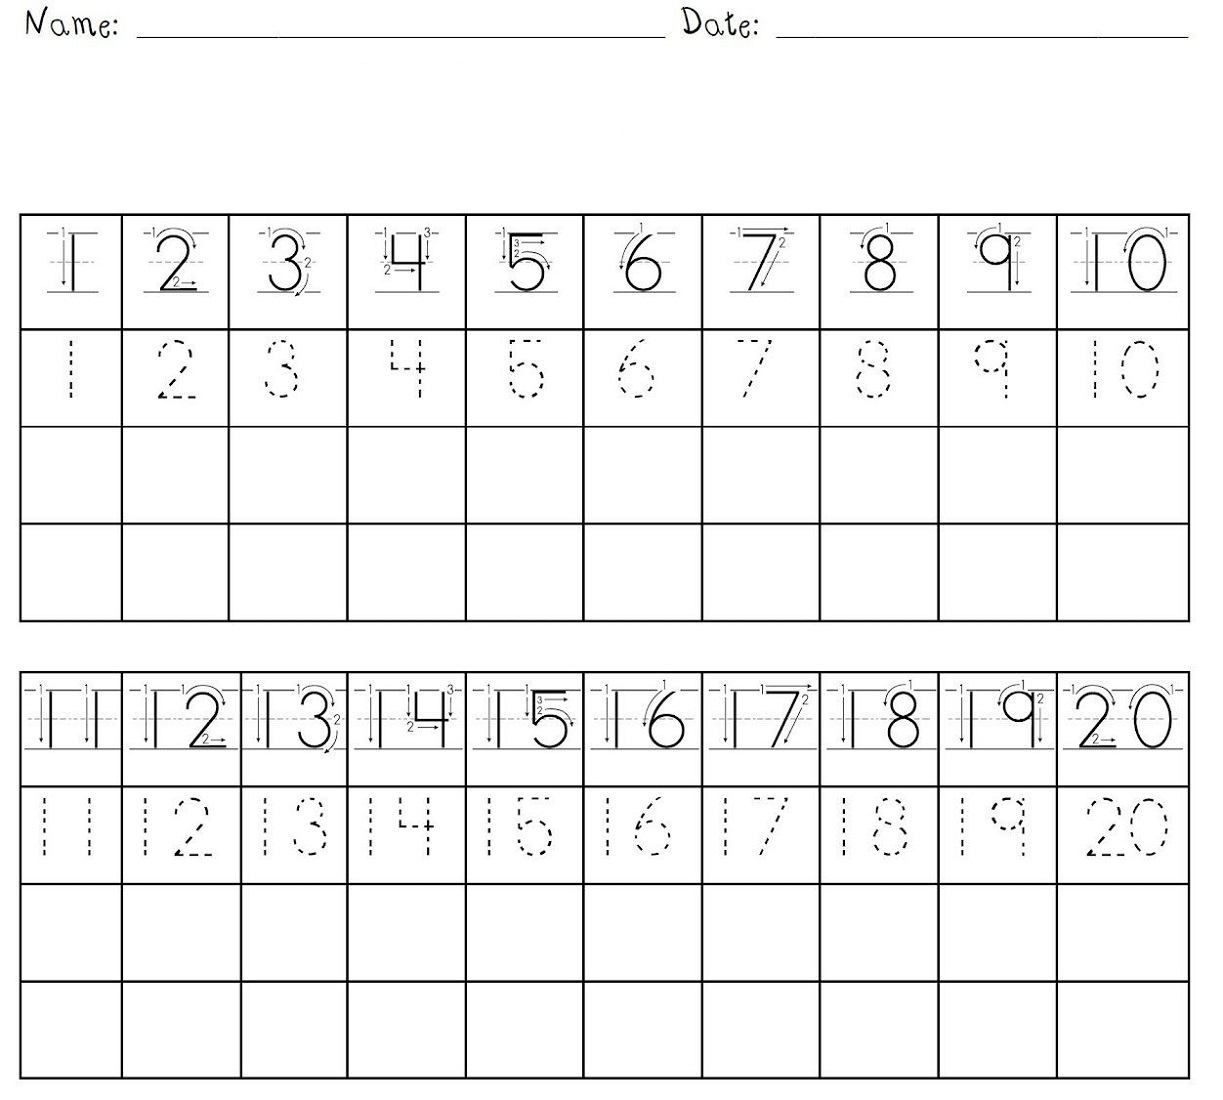 Trace Numbers 1-20